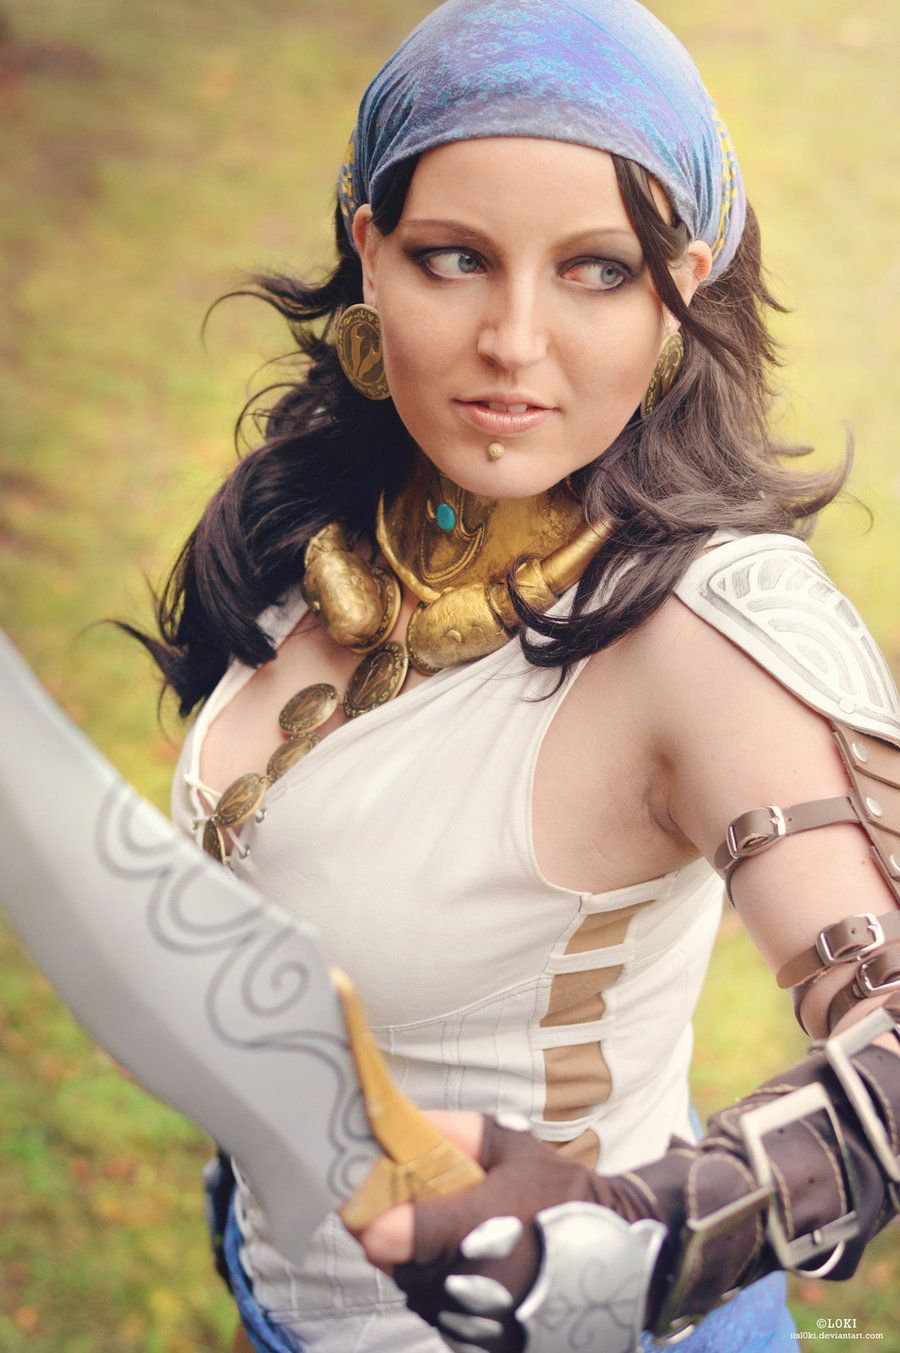 Dragon Age Isabela Cosplay Www Topsimages Com